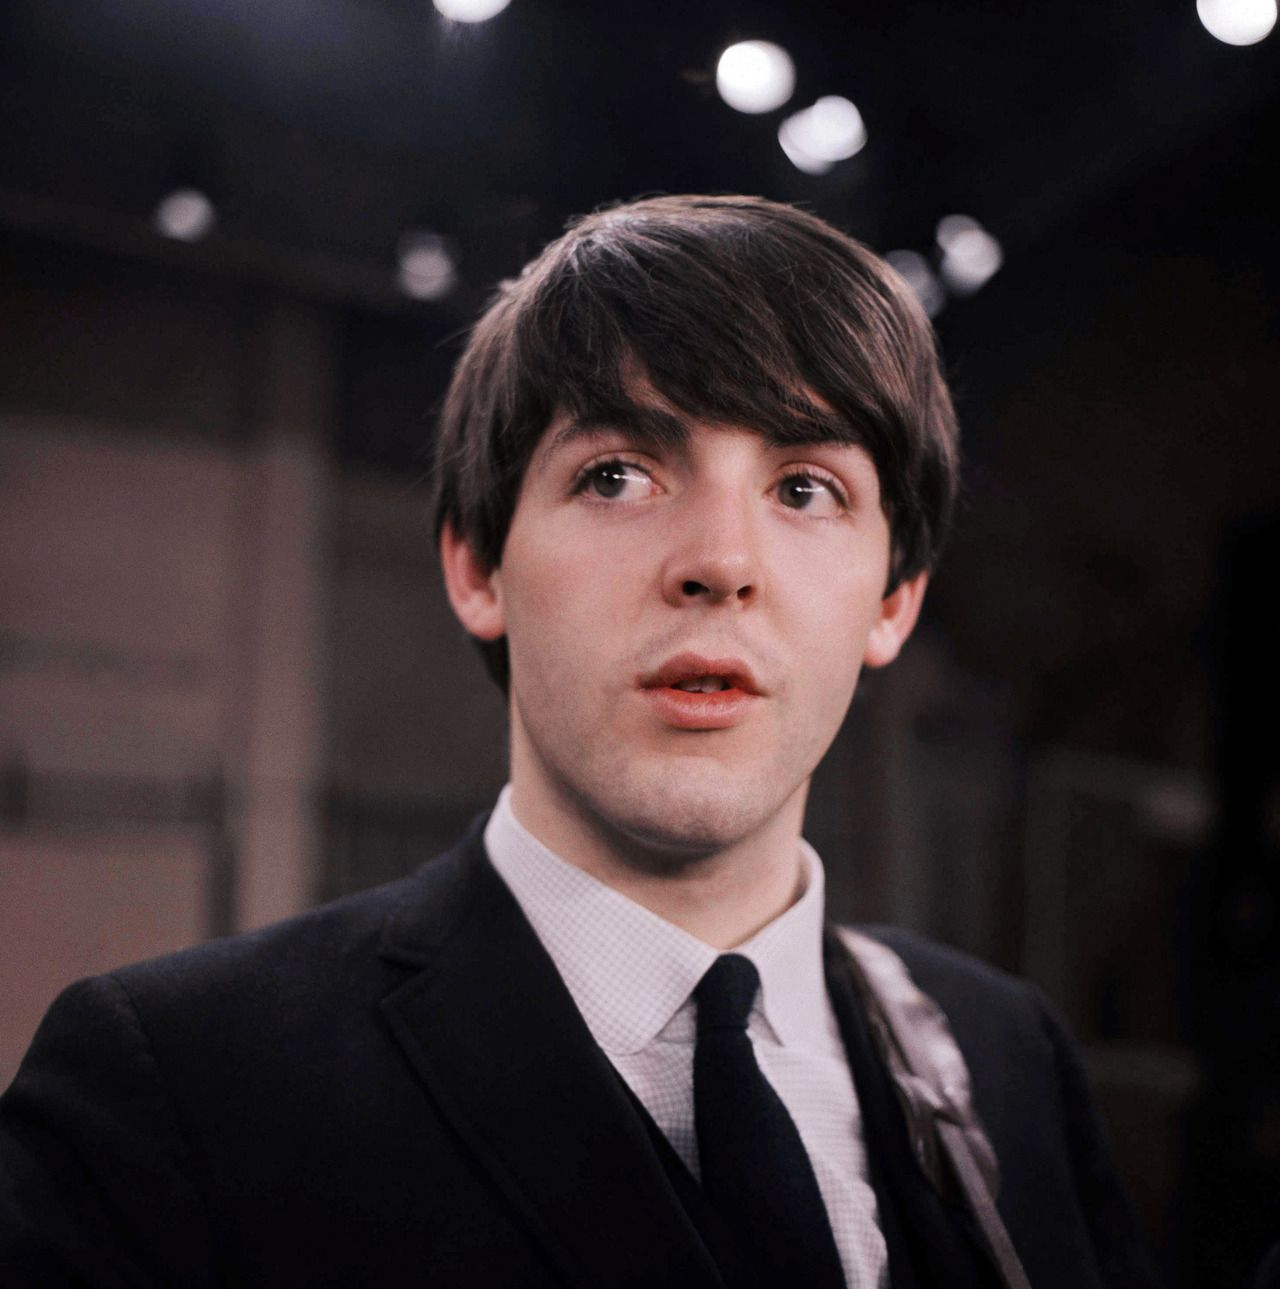 Paul McCartney On The Set Of Ed Sullivan Show Feb 1964